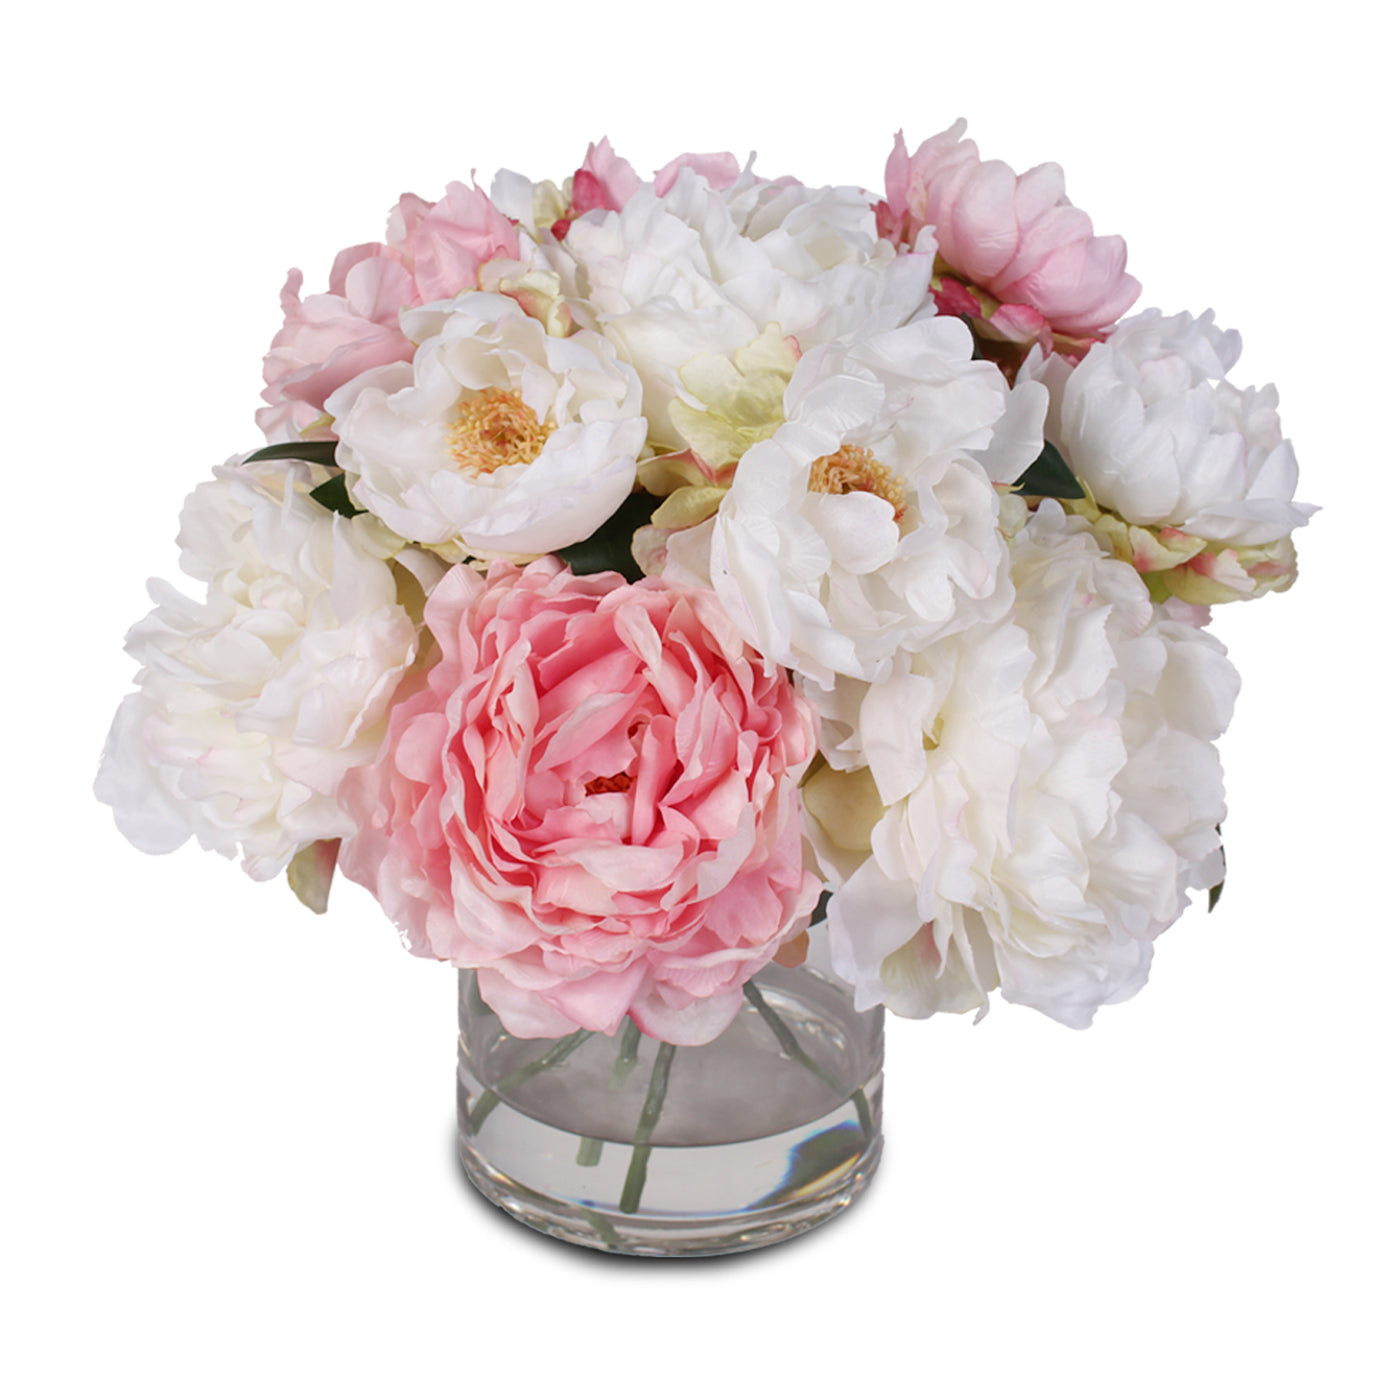 Silk French Peony Bouquet Arrangement In Glass Vase With Fake Water 4 Jenny Silks